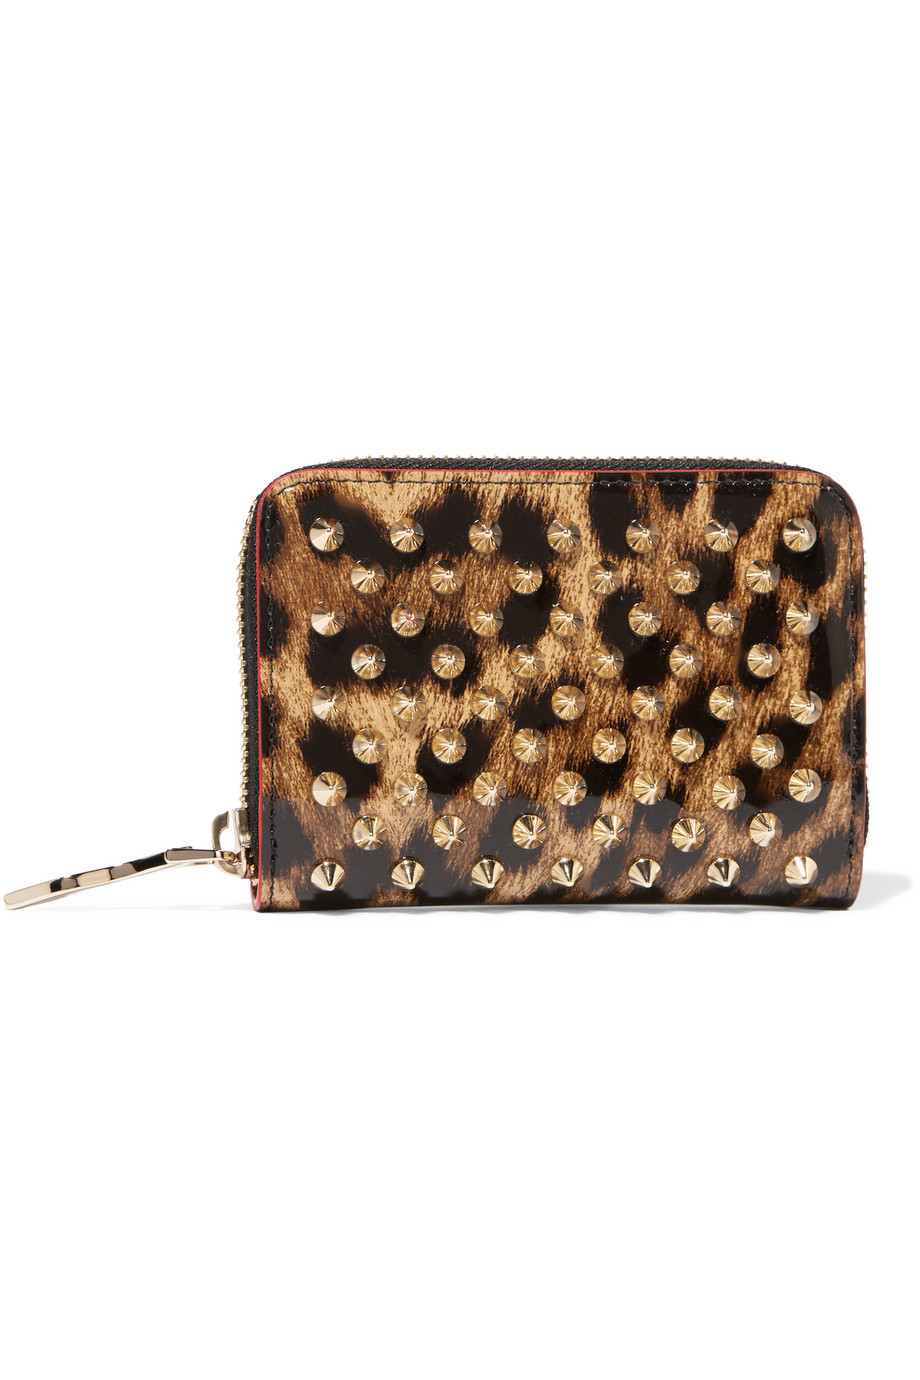 Christian Louboutin Panettone Spiked Leopard-Print Patent-Leather Wallet, Leopard Print, Women's